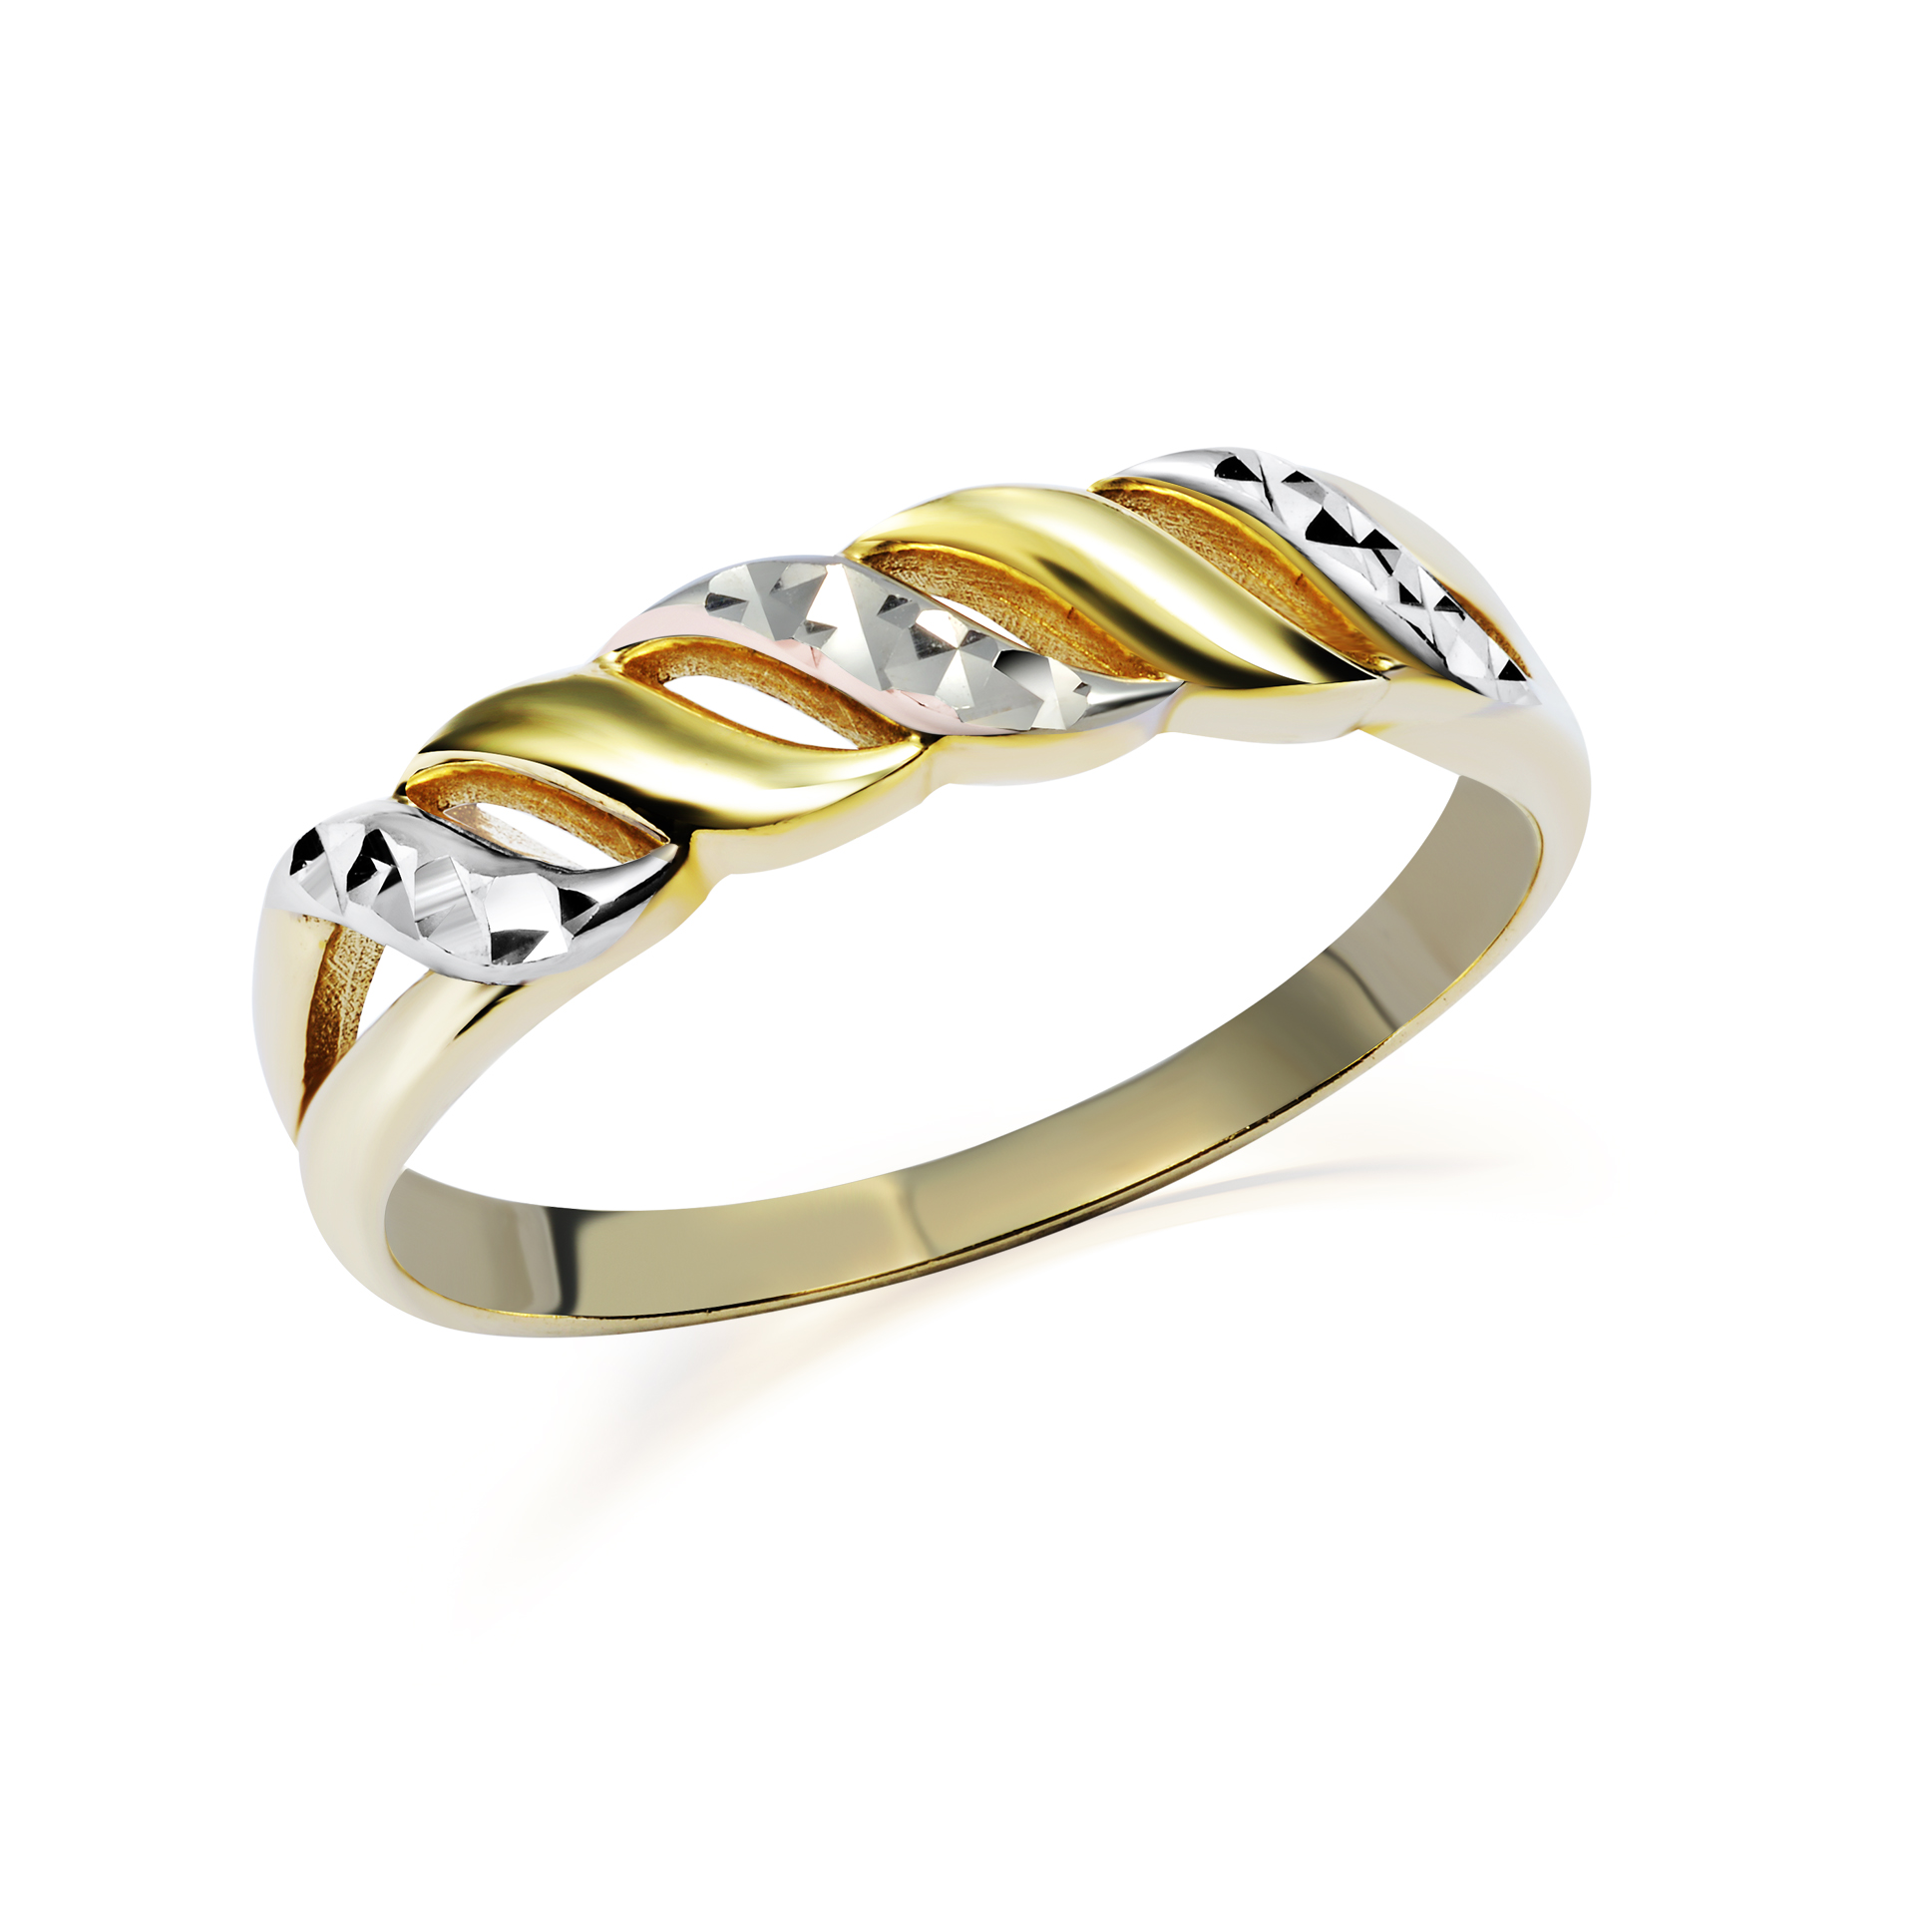 Women's Ring with pattern - 10K 2-tone Gold